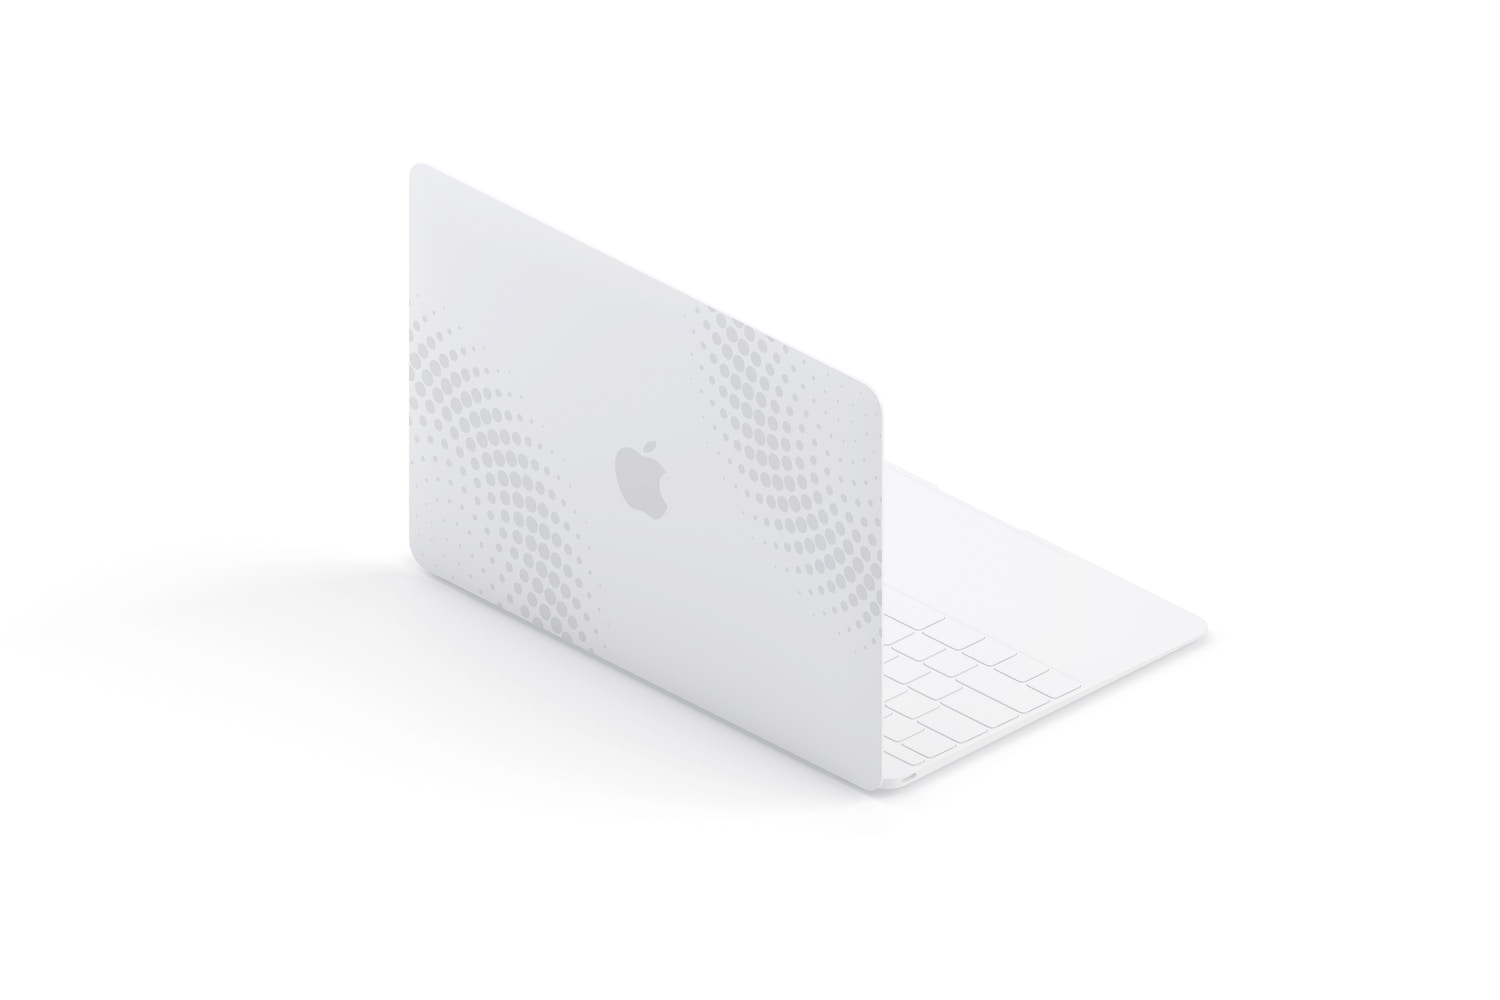 Clay MacBook Mockup, Isometric Back Left View by Original Mockups on Original Mockups